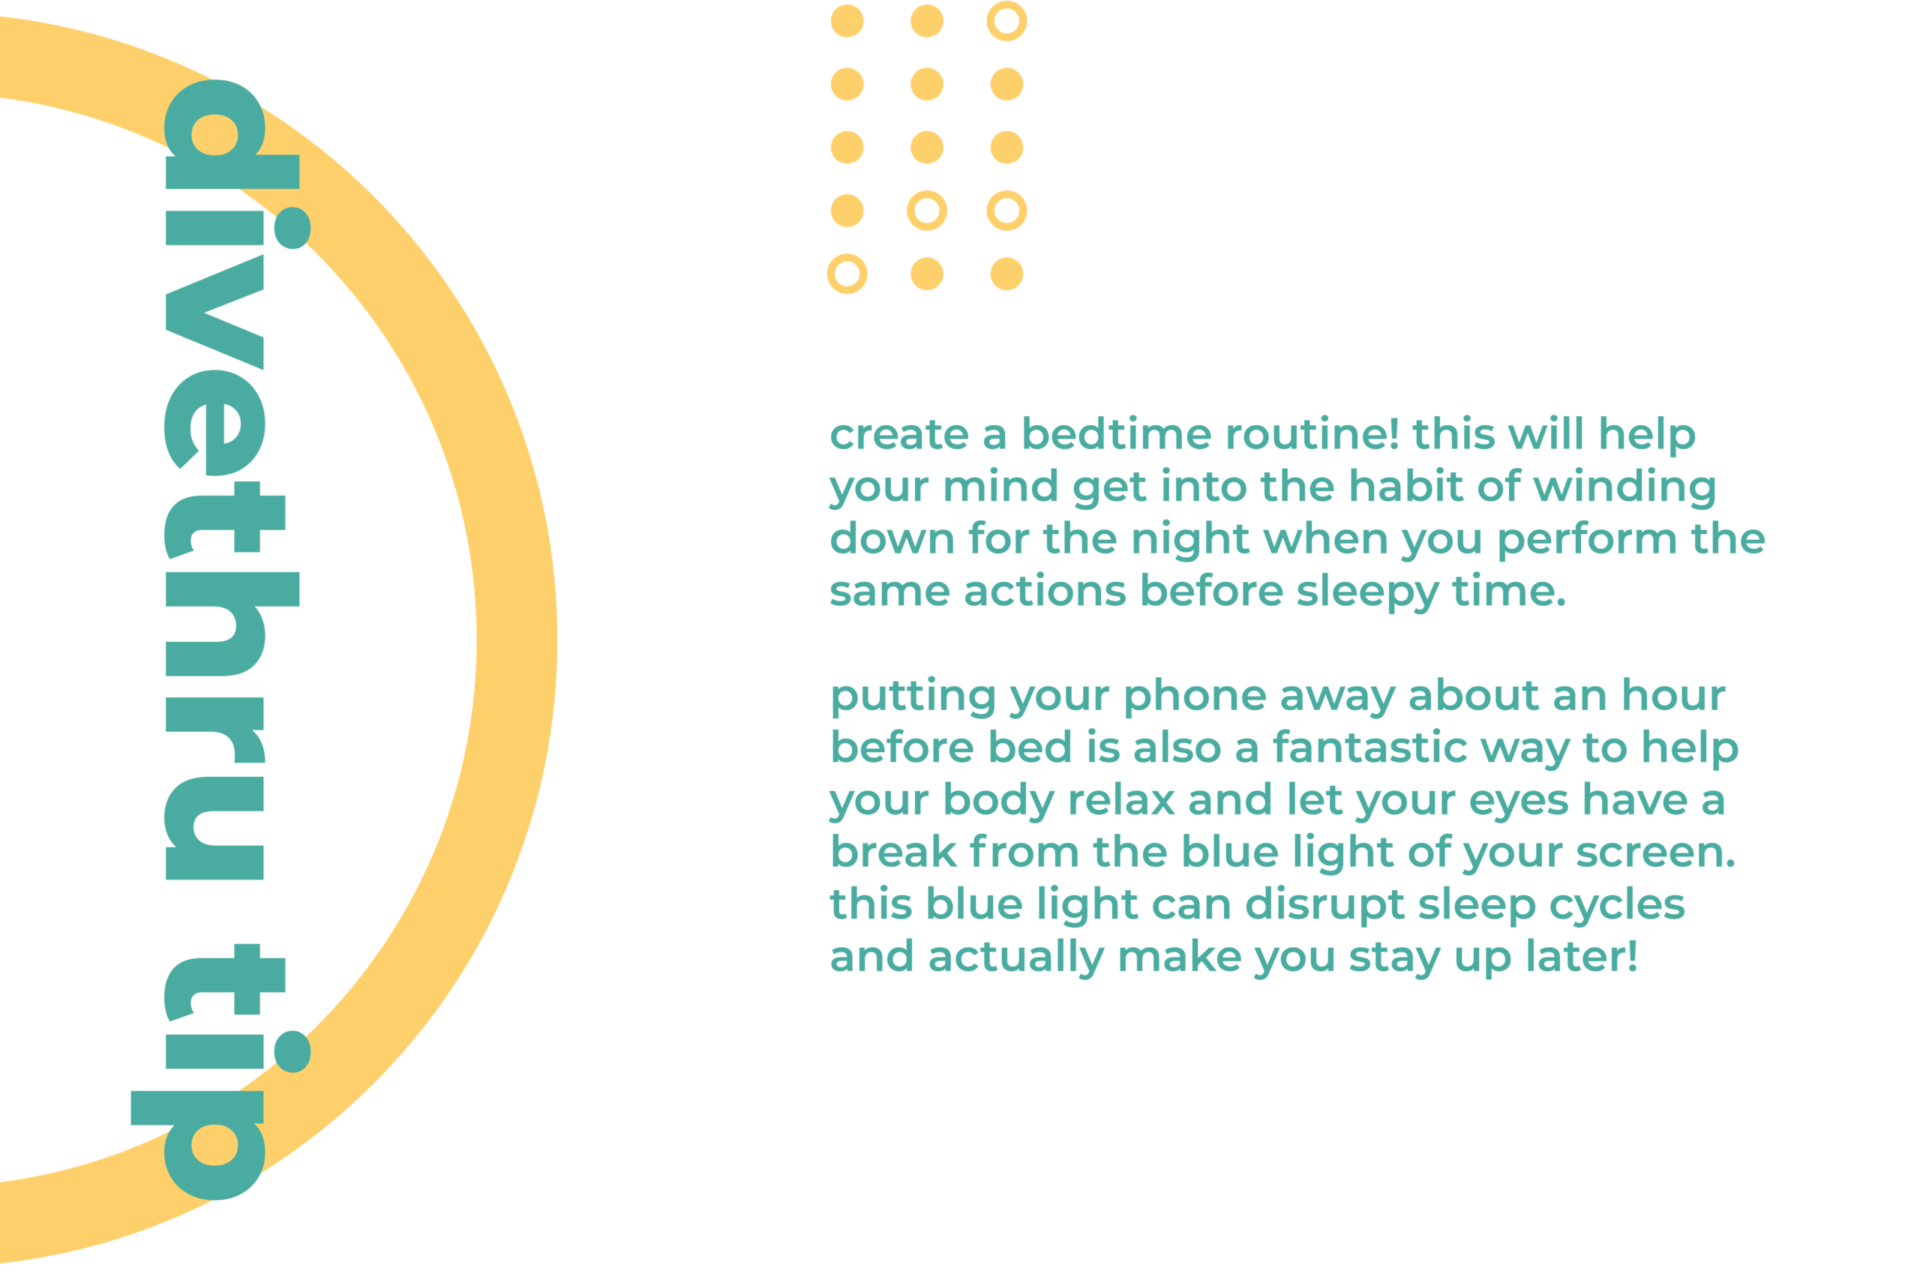 This image gives you a tip on how to deal with a physical sign of anxiety. Create a bedtime routine! This will help your mind get into the habit of winding down for the night when you perform the same actions before sleepy time. Putting your phone away about an hour before bed is also a fantastic way to help your body relax and let your eyes have a break from the blue light of your screen. This blue light can disrupt sleep cycles and actually make you stay up later!